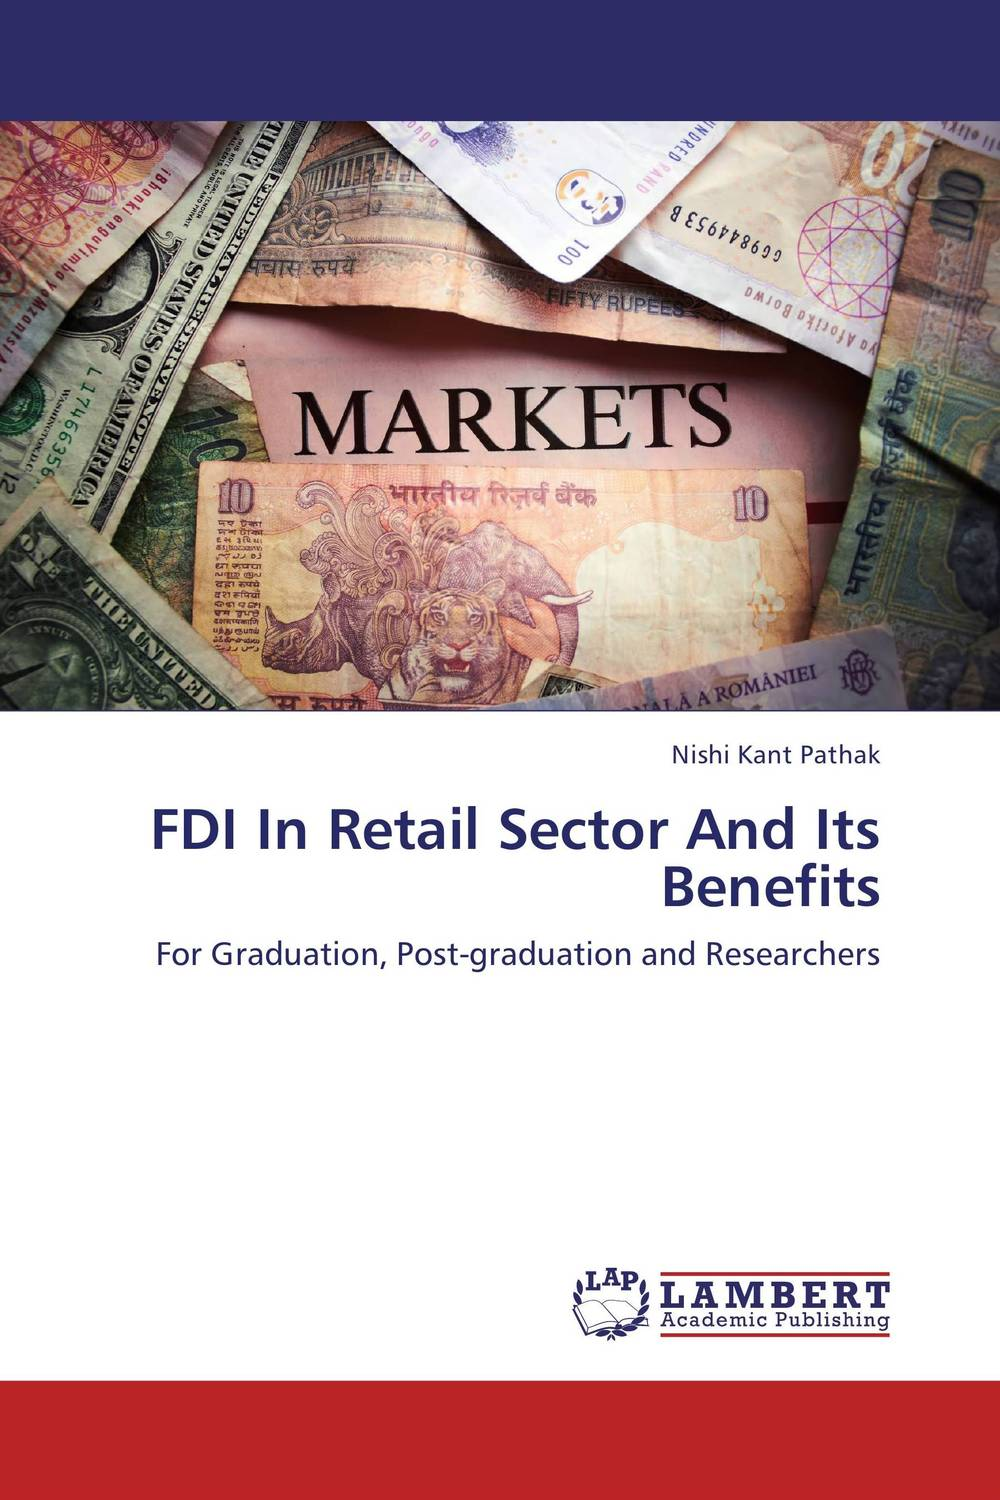 FDI In Retail Sector And Its Benefits